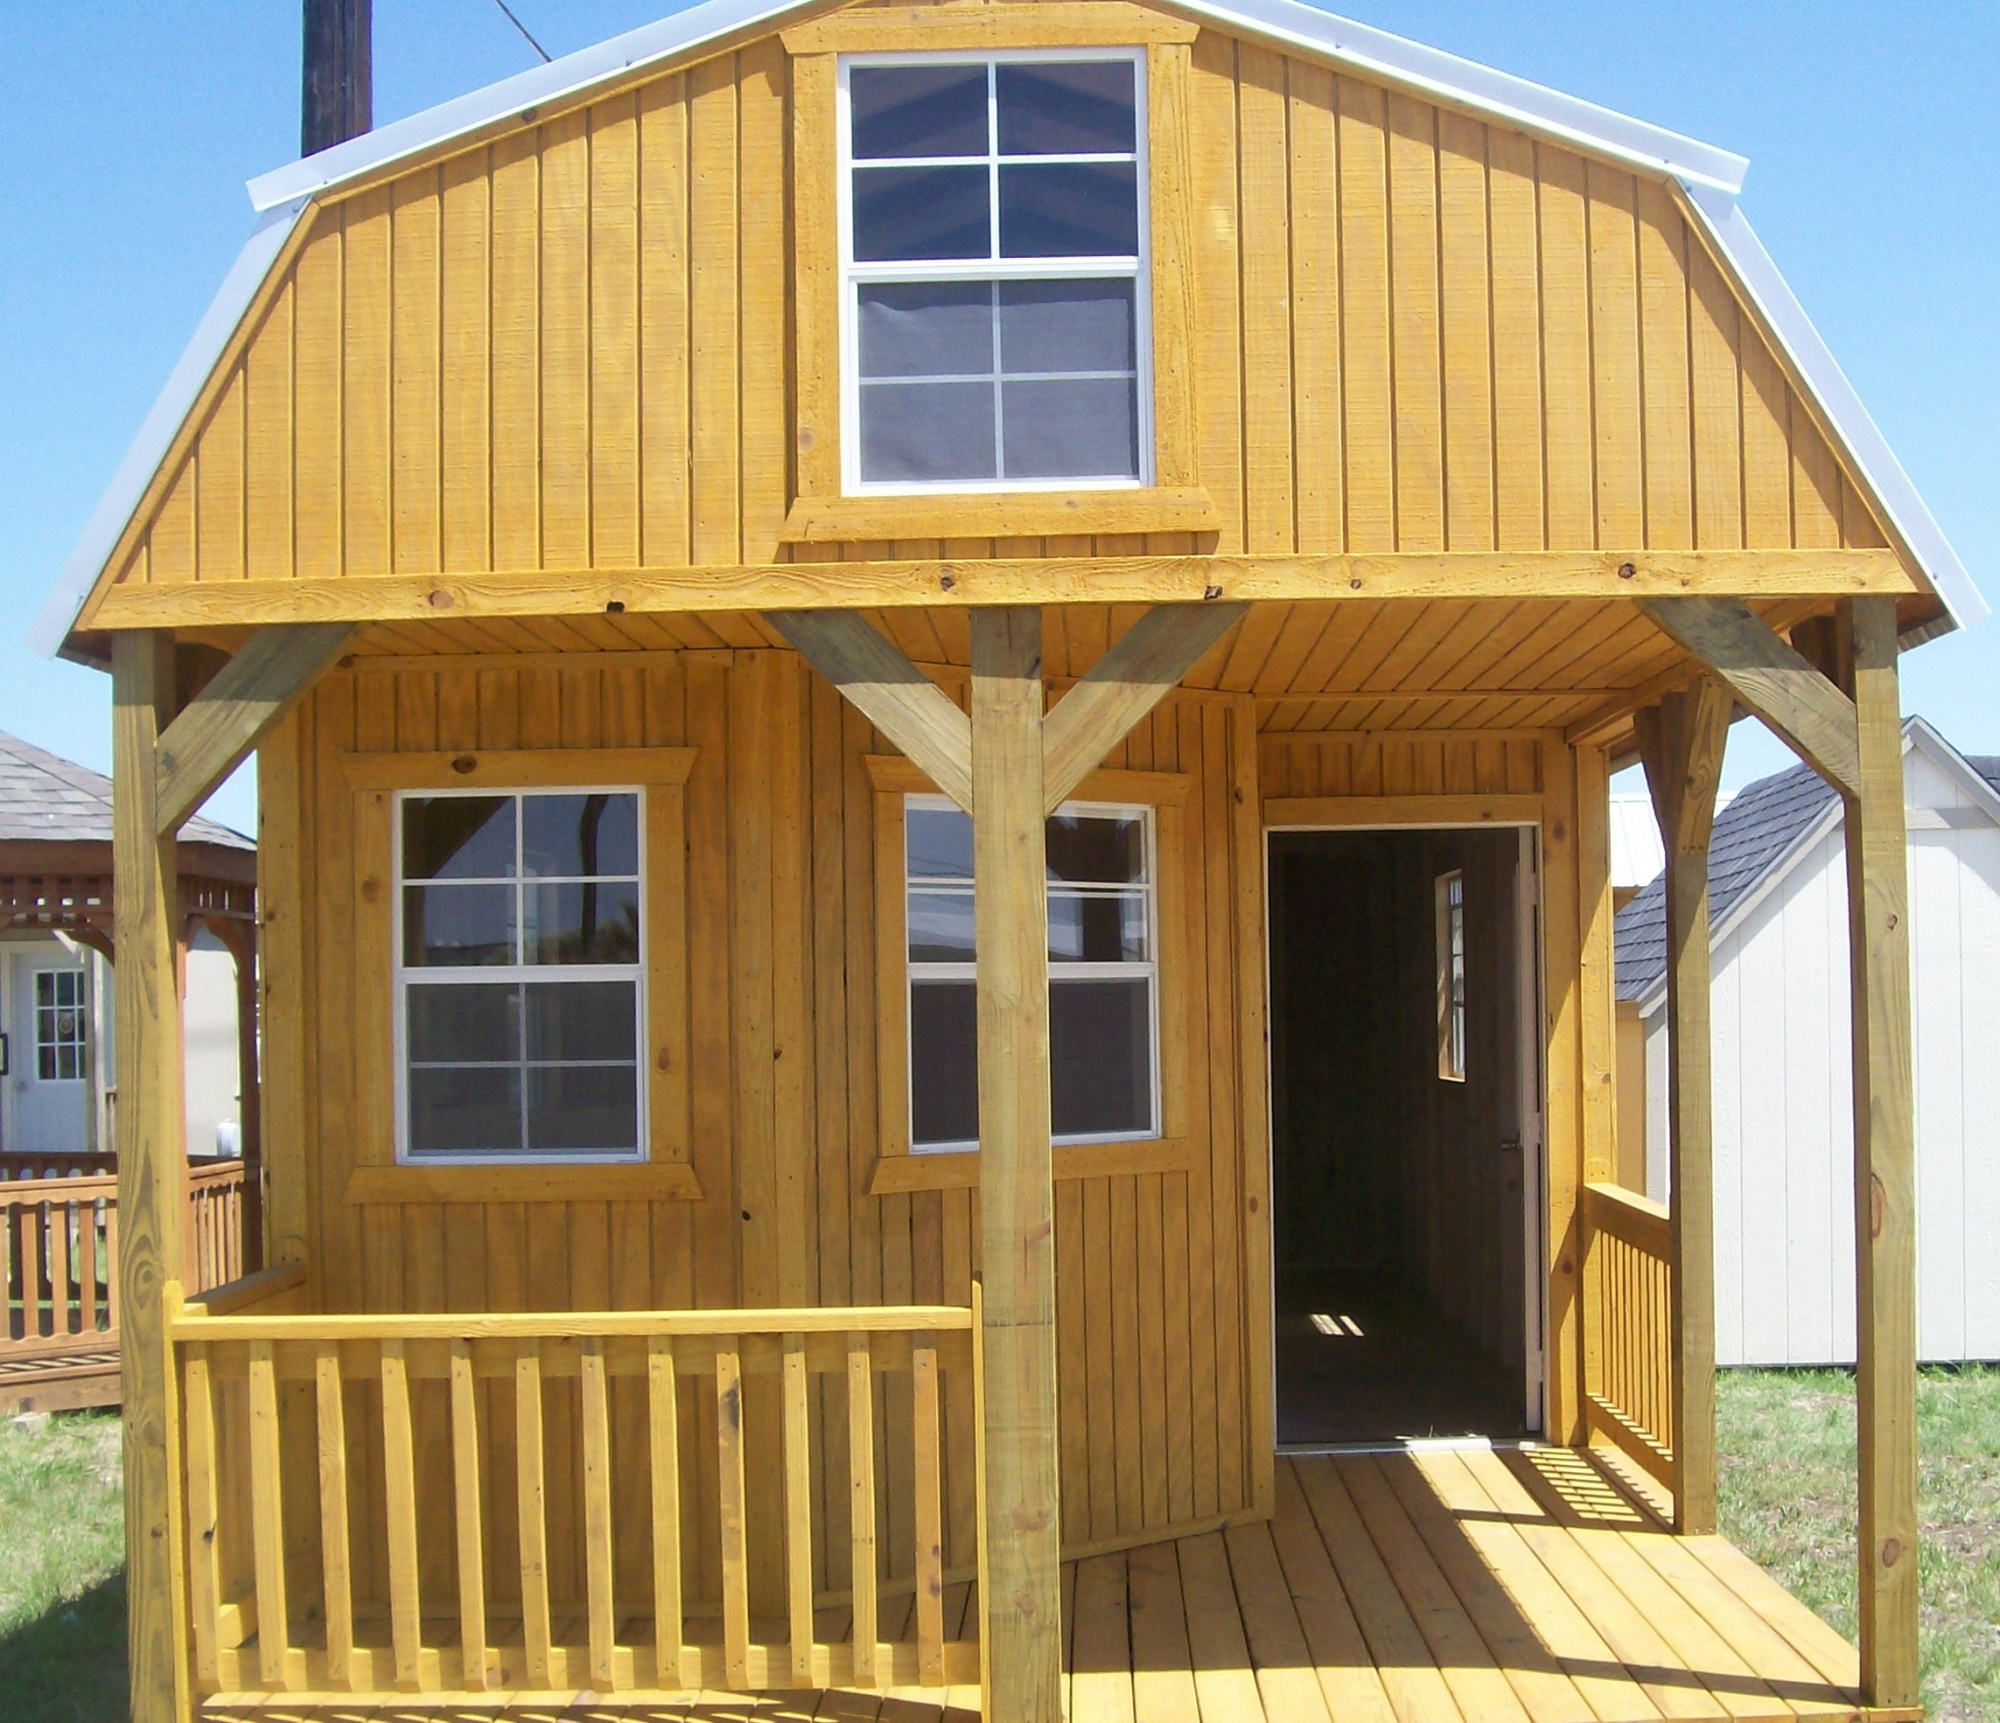 Cabins deluxe cabins lofted barn cabins side lofted barn for Best barn designs